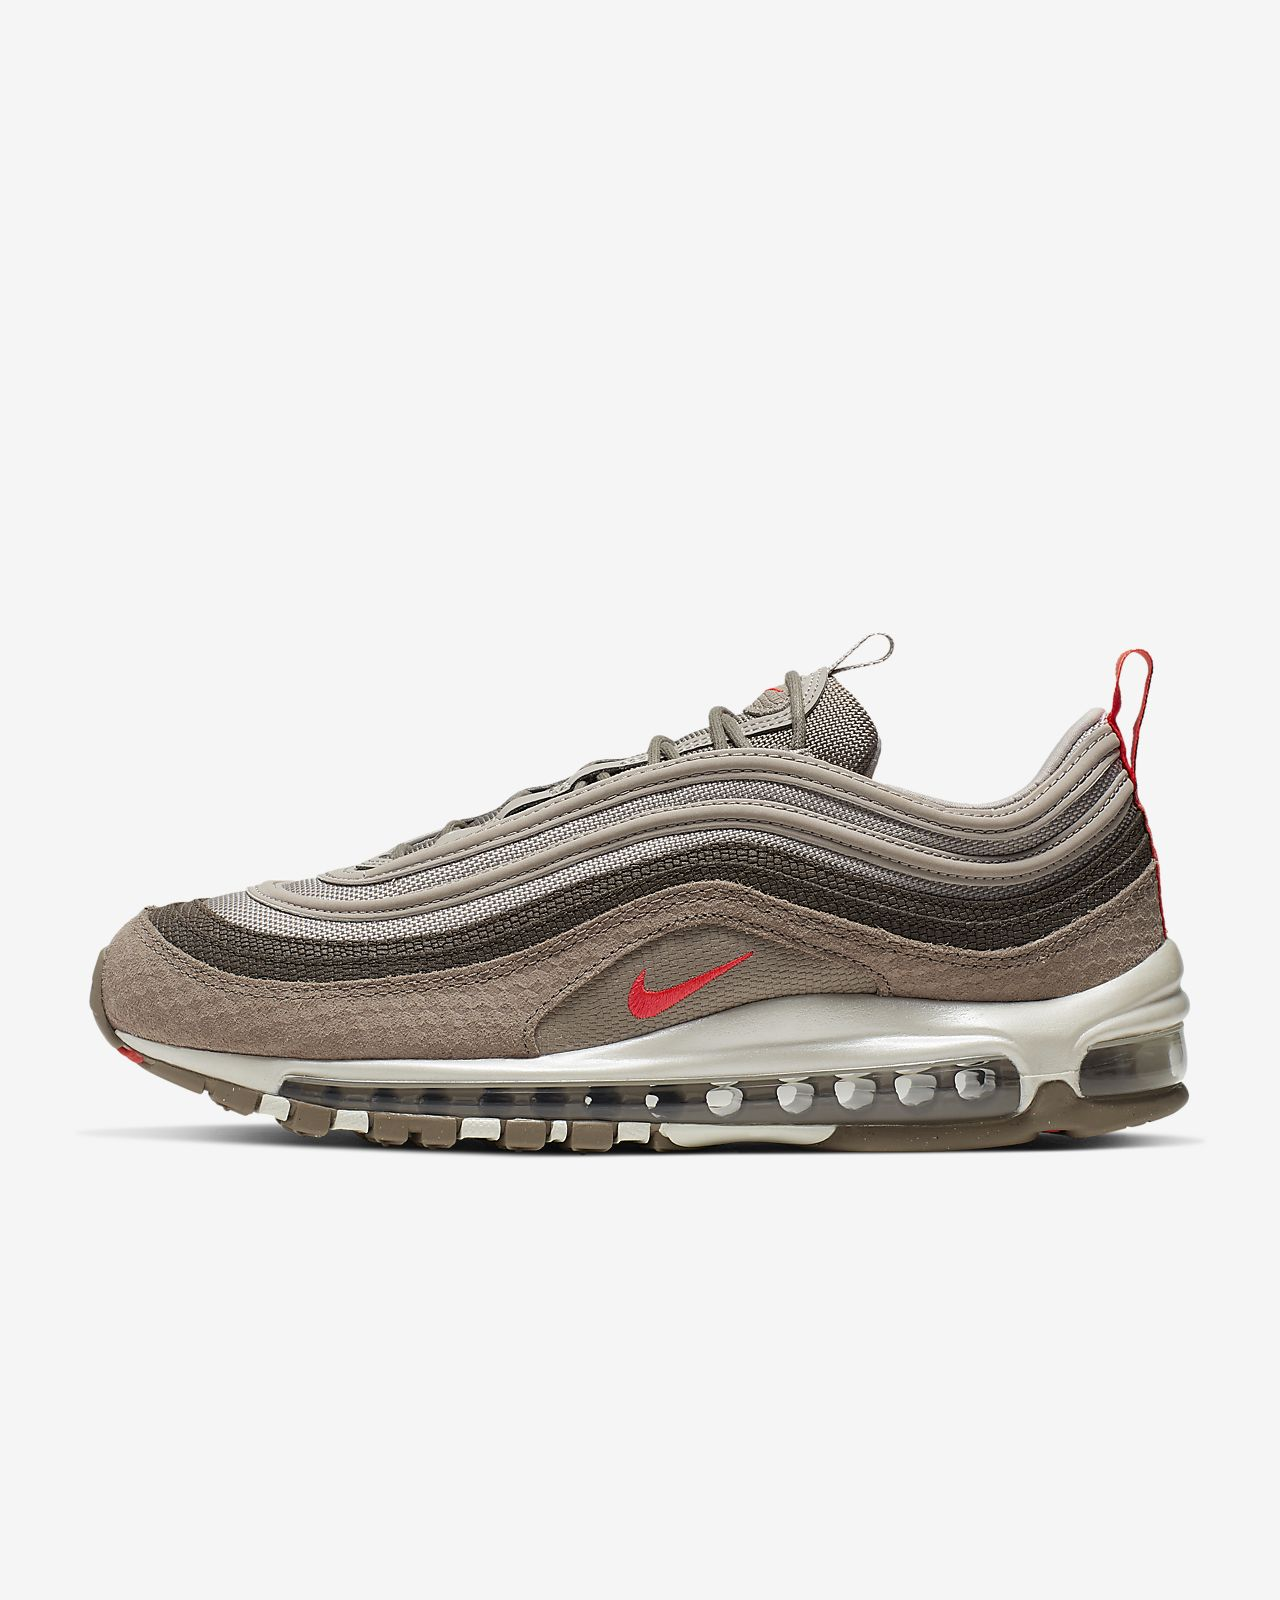 c8db2e787a Nike Air Max 97 Premium Men's Shoe. Nike.com